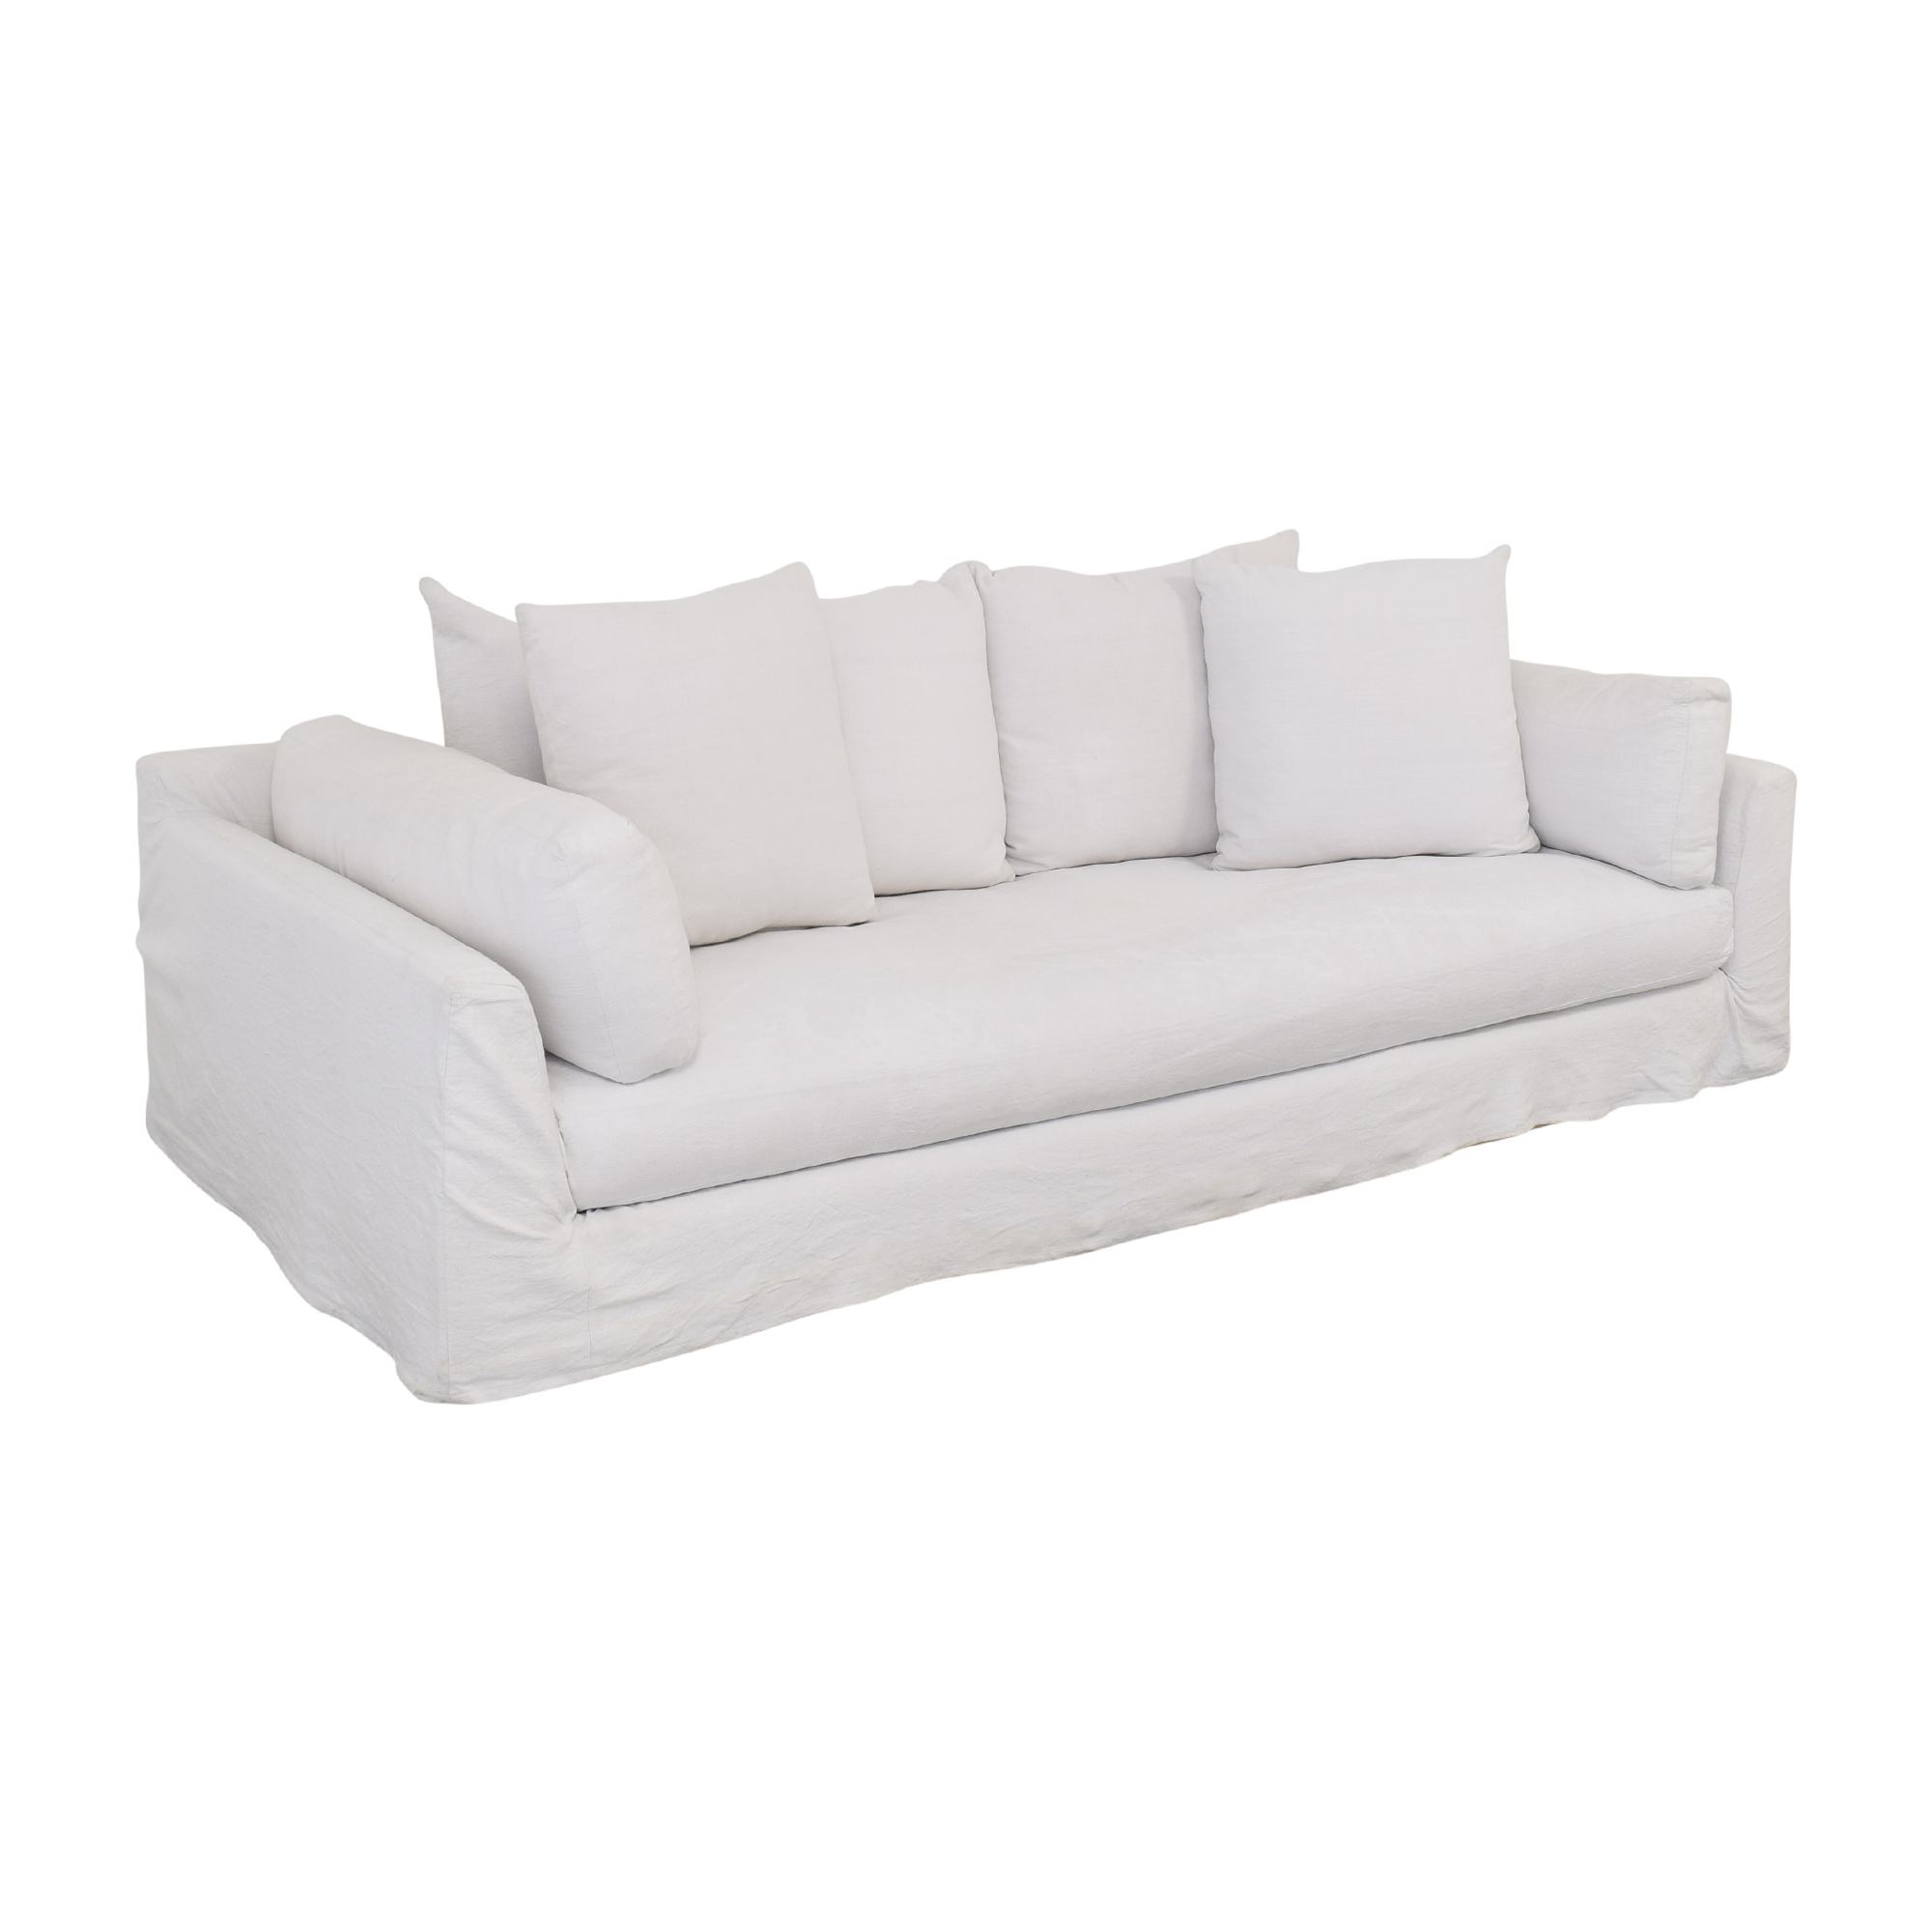 One Kings Lane One Kings Lane Banyon Slipcover Sofa for sale